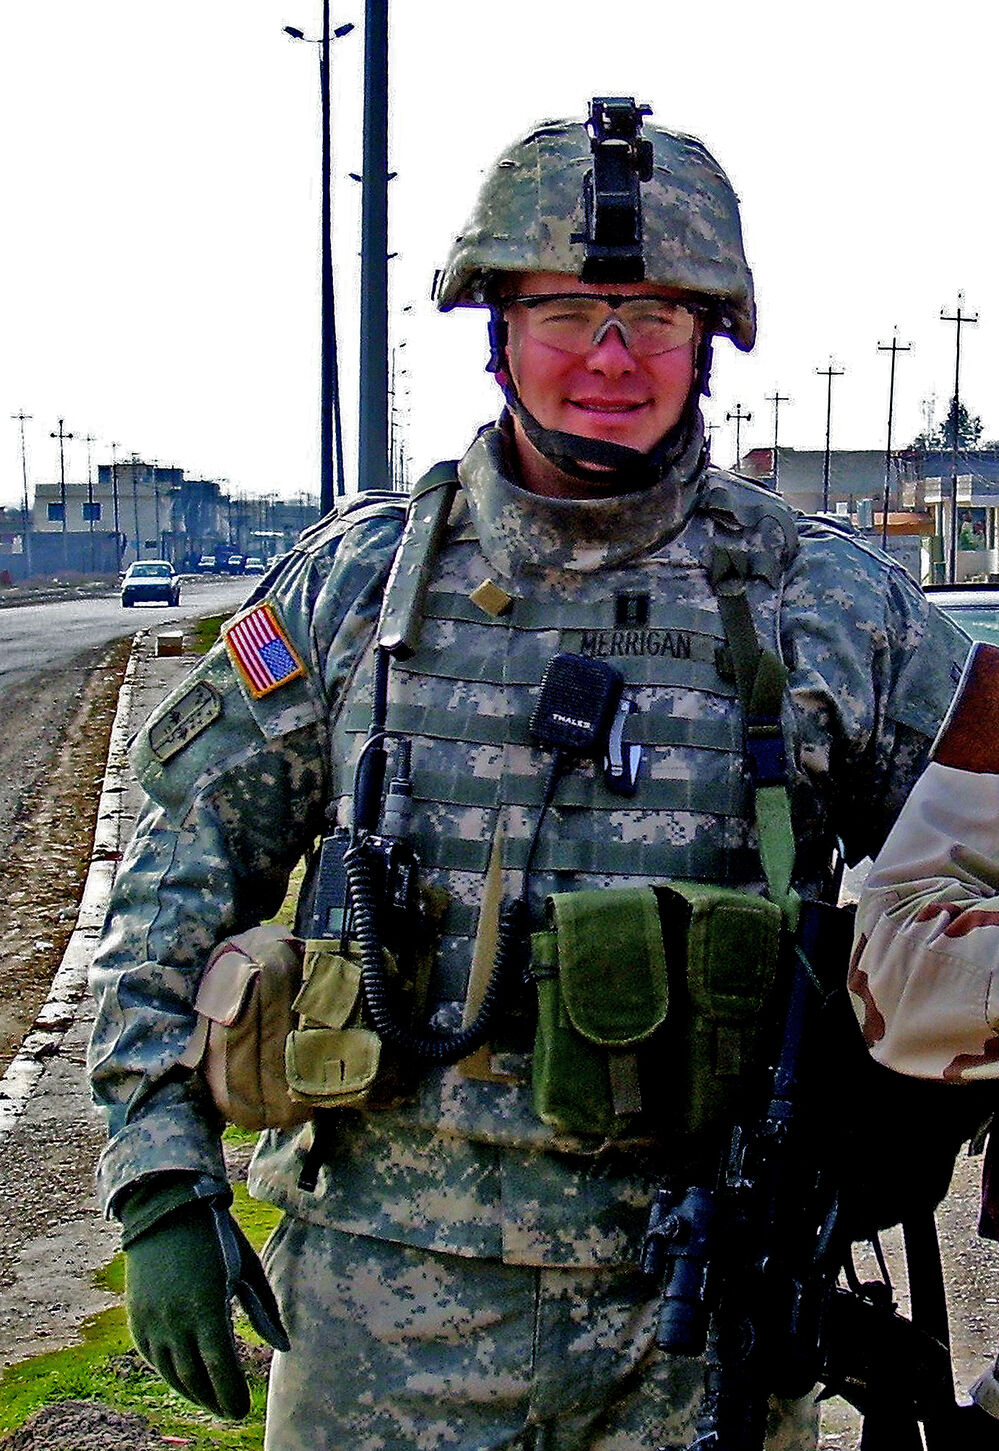 Couple serves deployment  in Iraq at same time